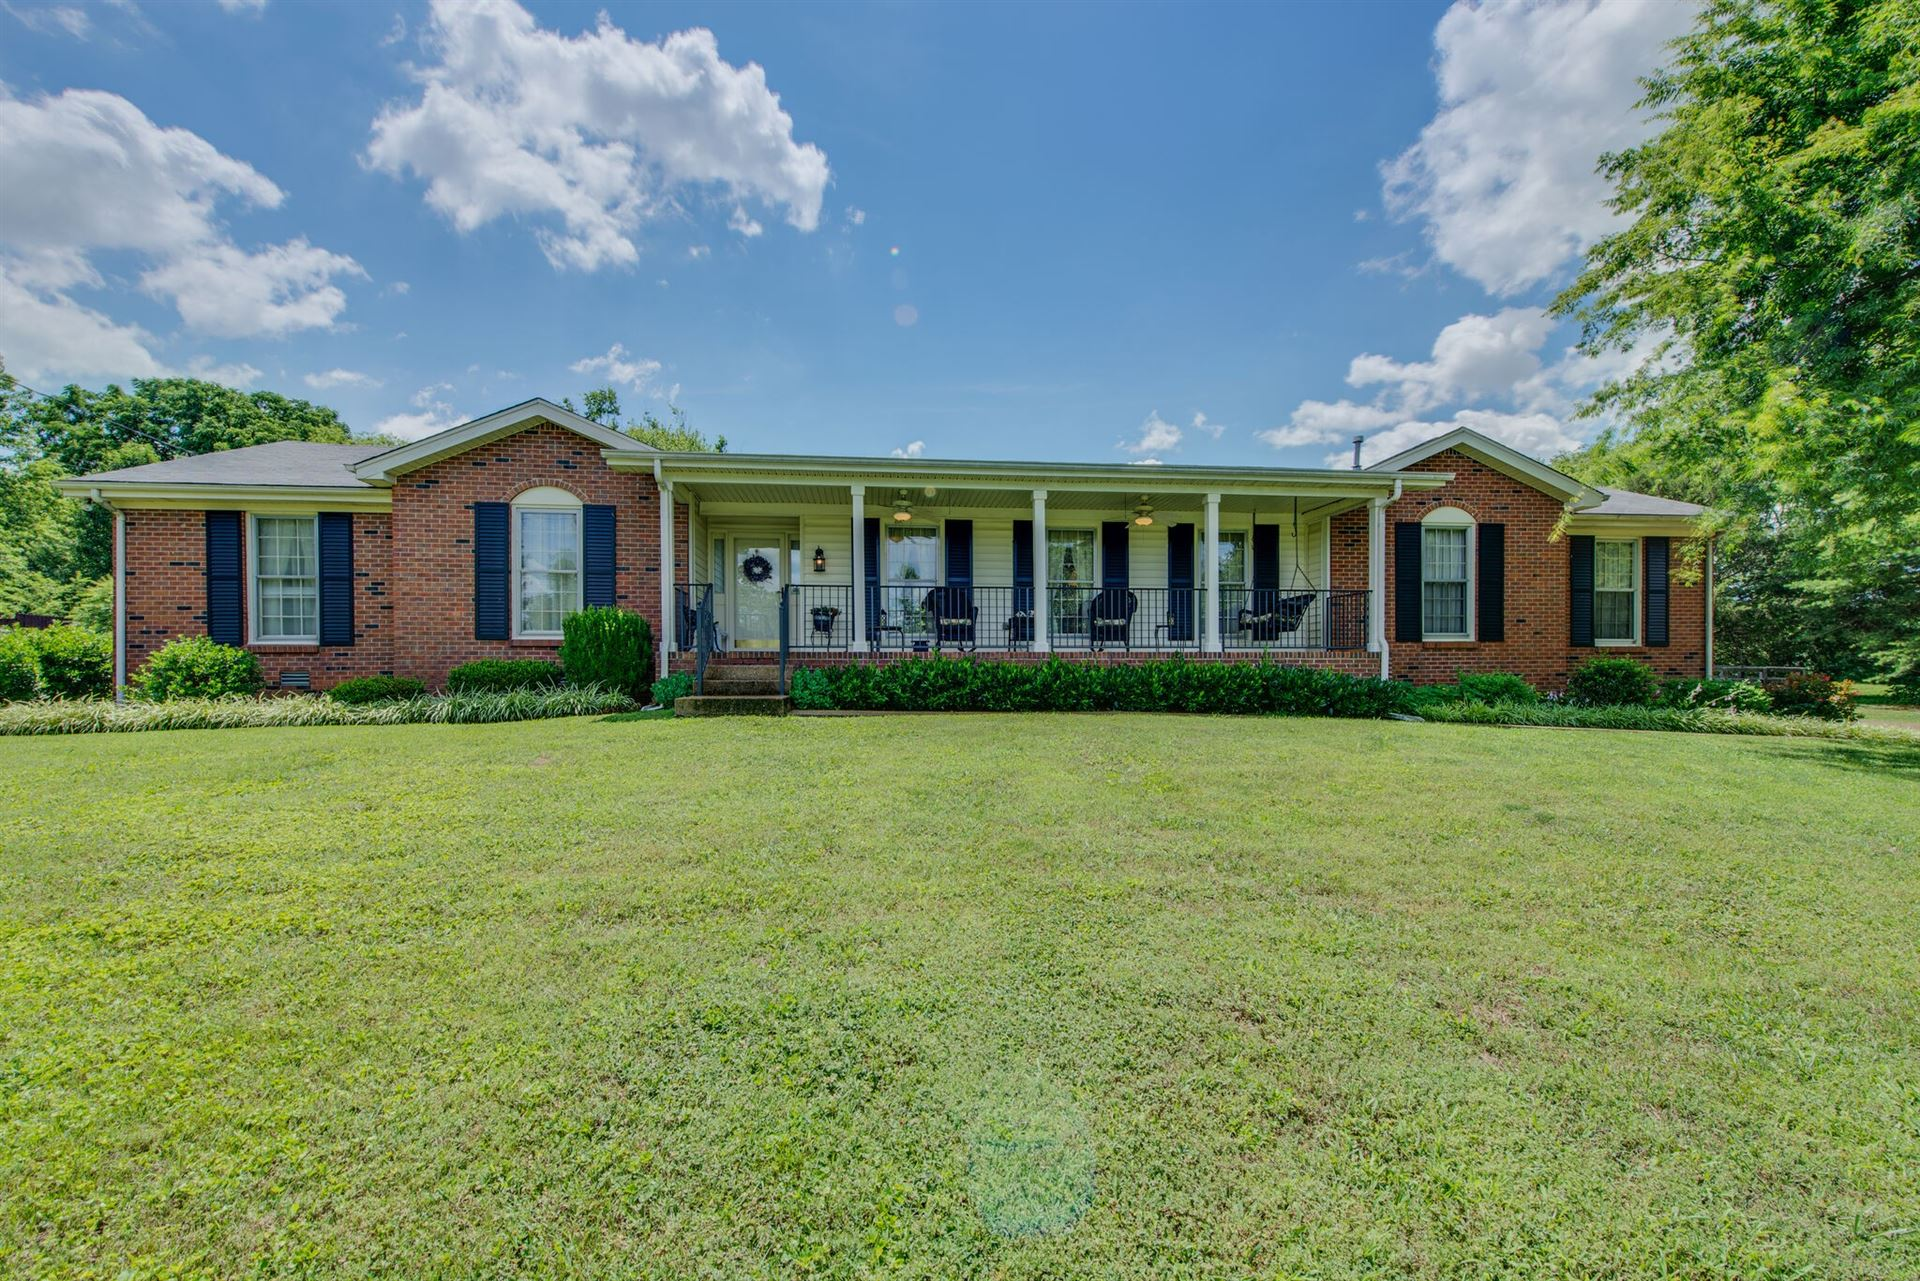 1112 Indian Point Dr, Brentwood, TN 37027 - MLS#: 2210819